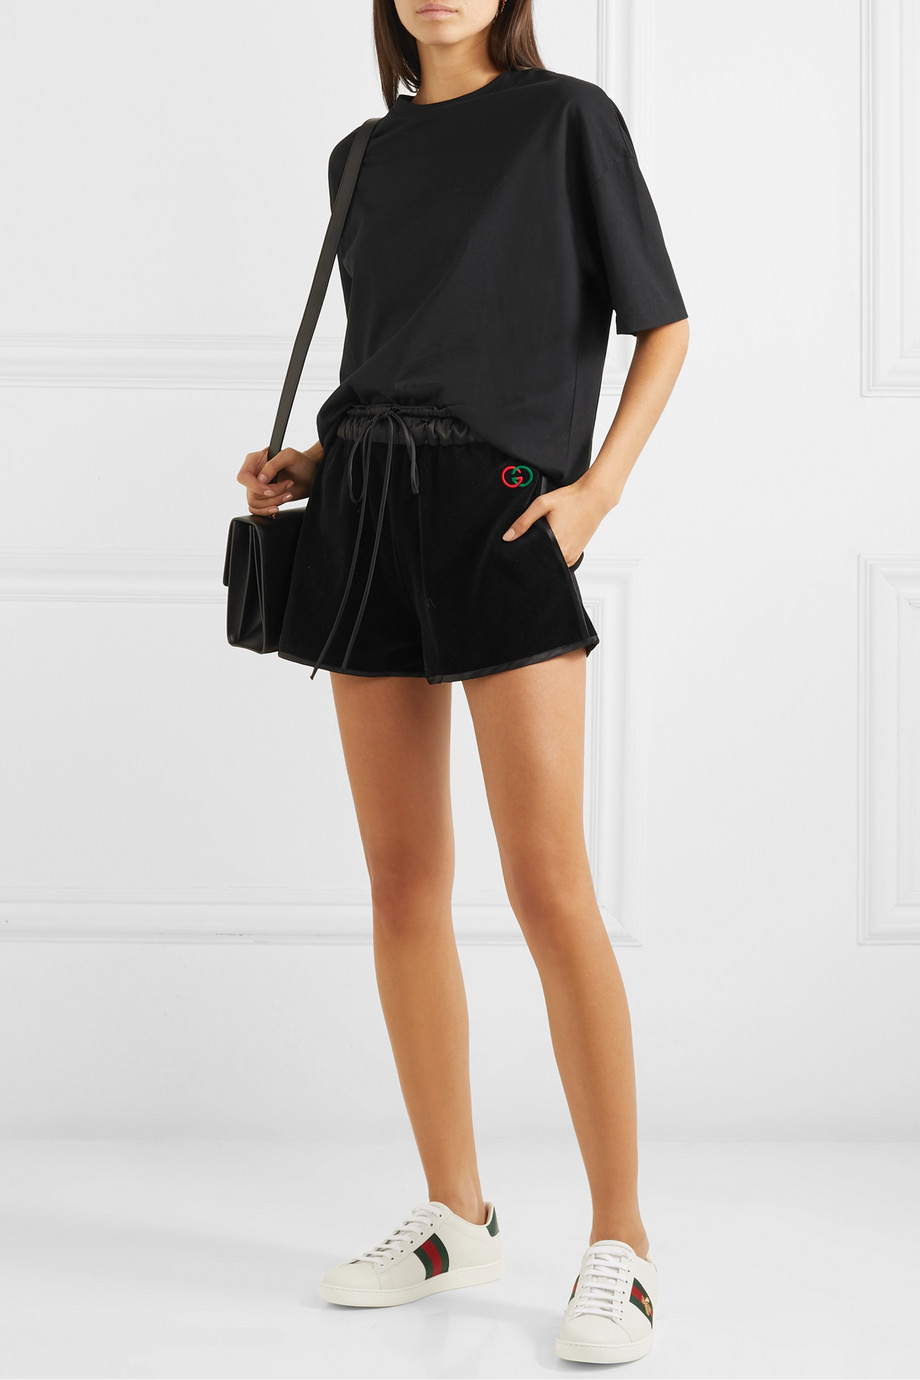 Gucci Satin-trimmed cotton-blend velvet shorts